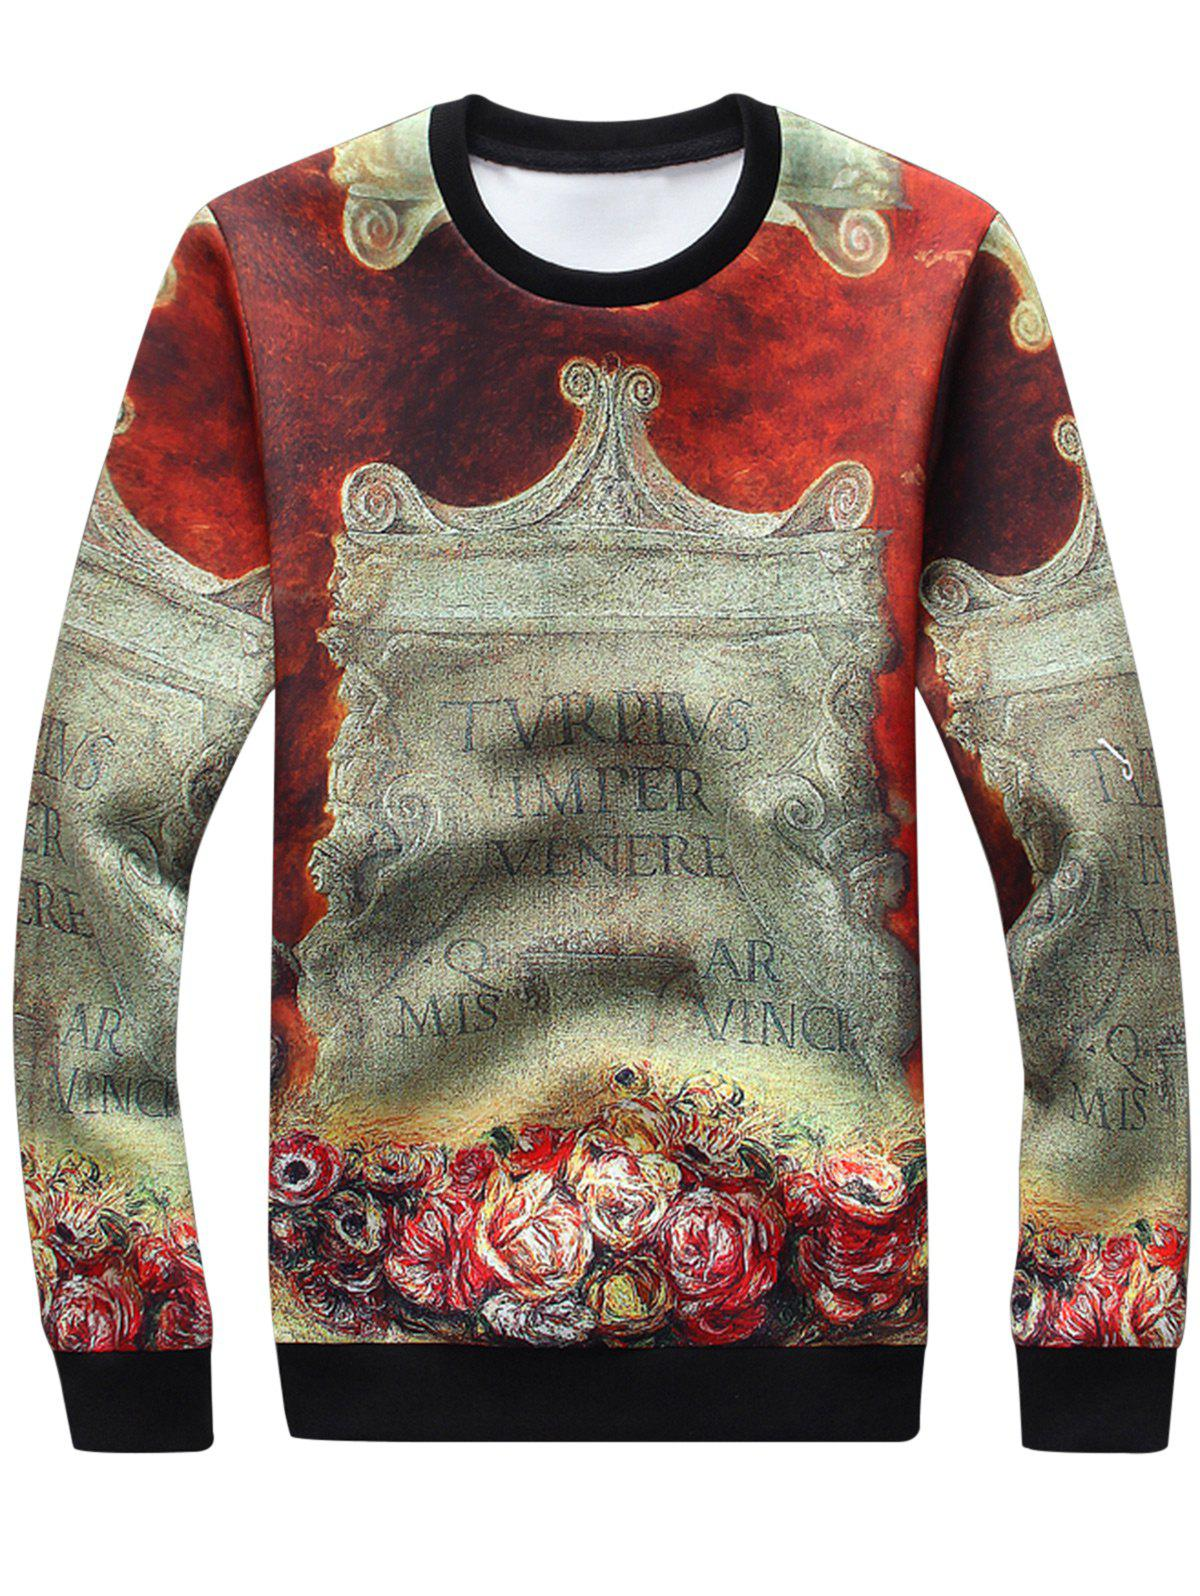 Sweatshirt à manches longues 3D Stele Graphic Print - multicolore L